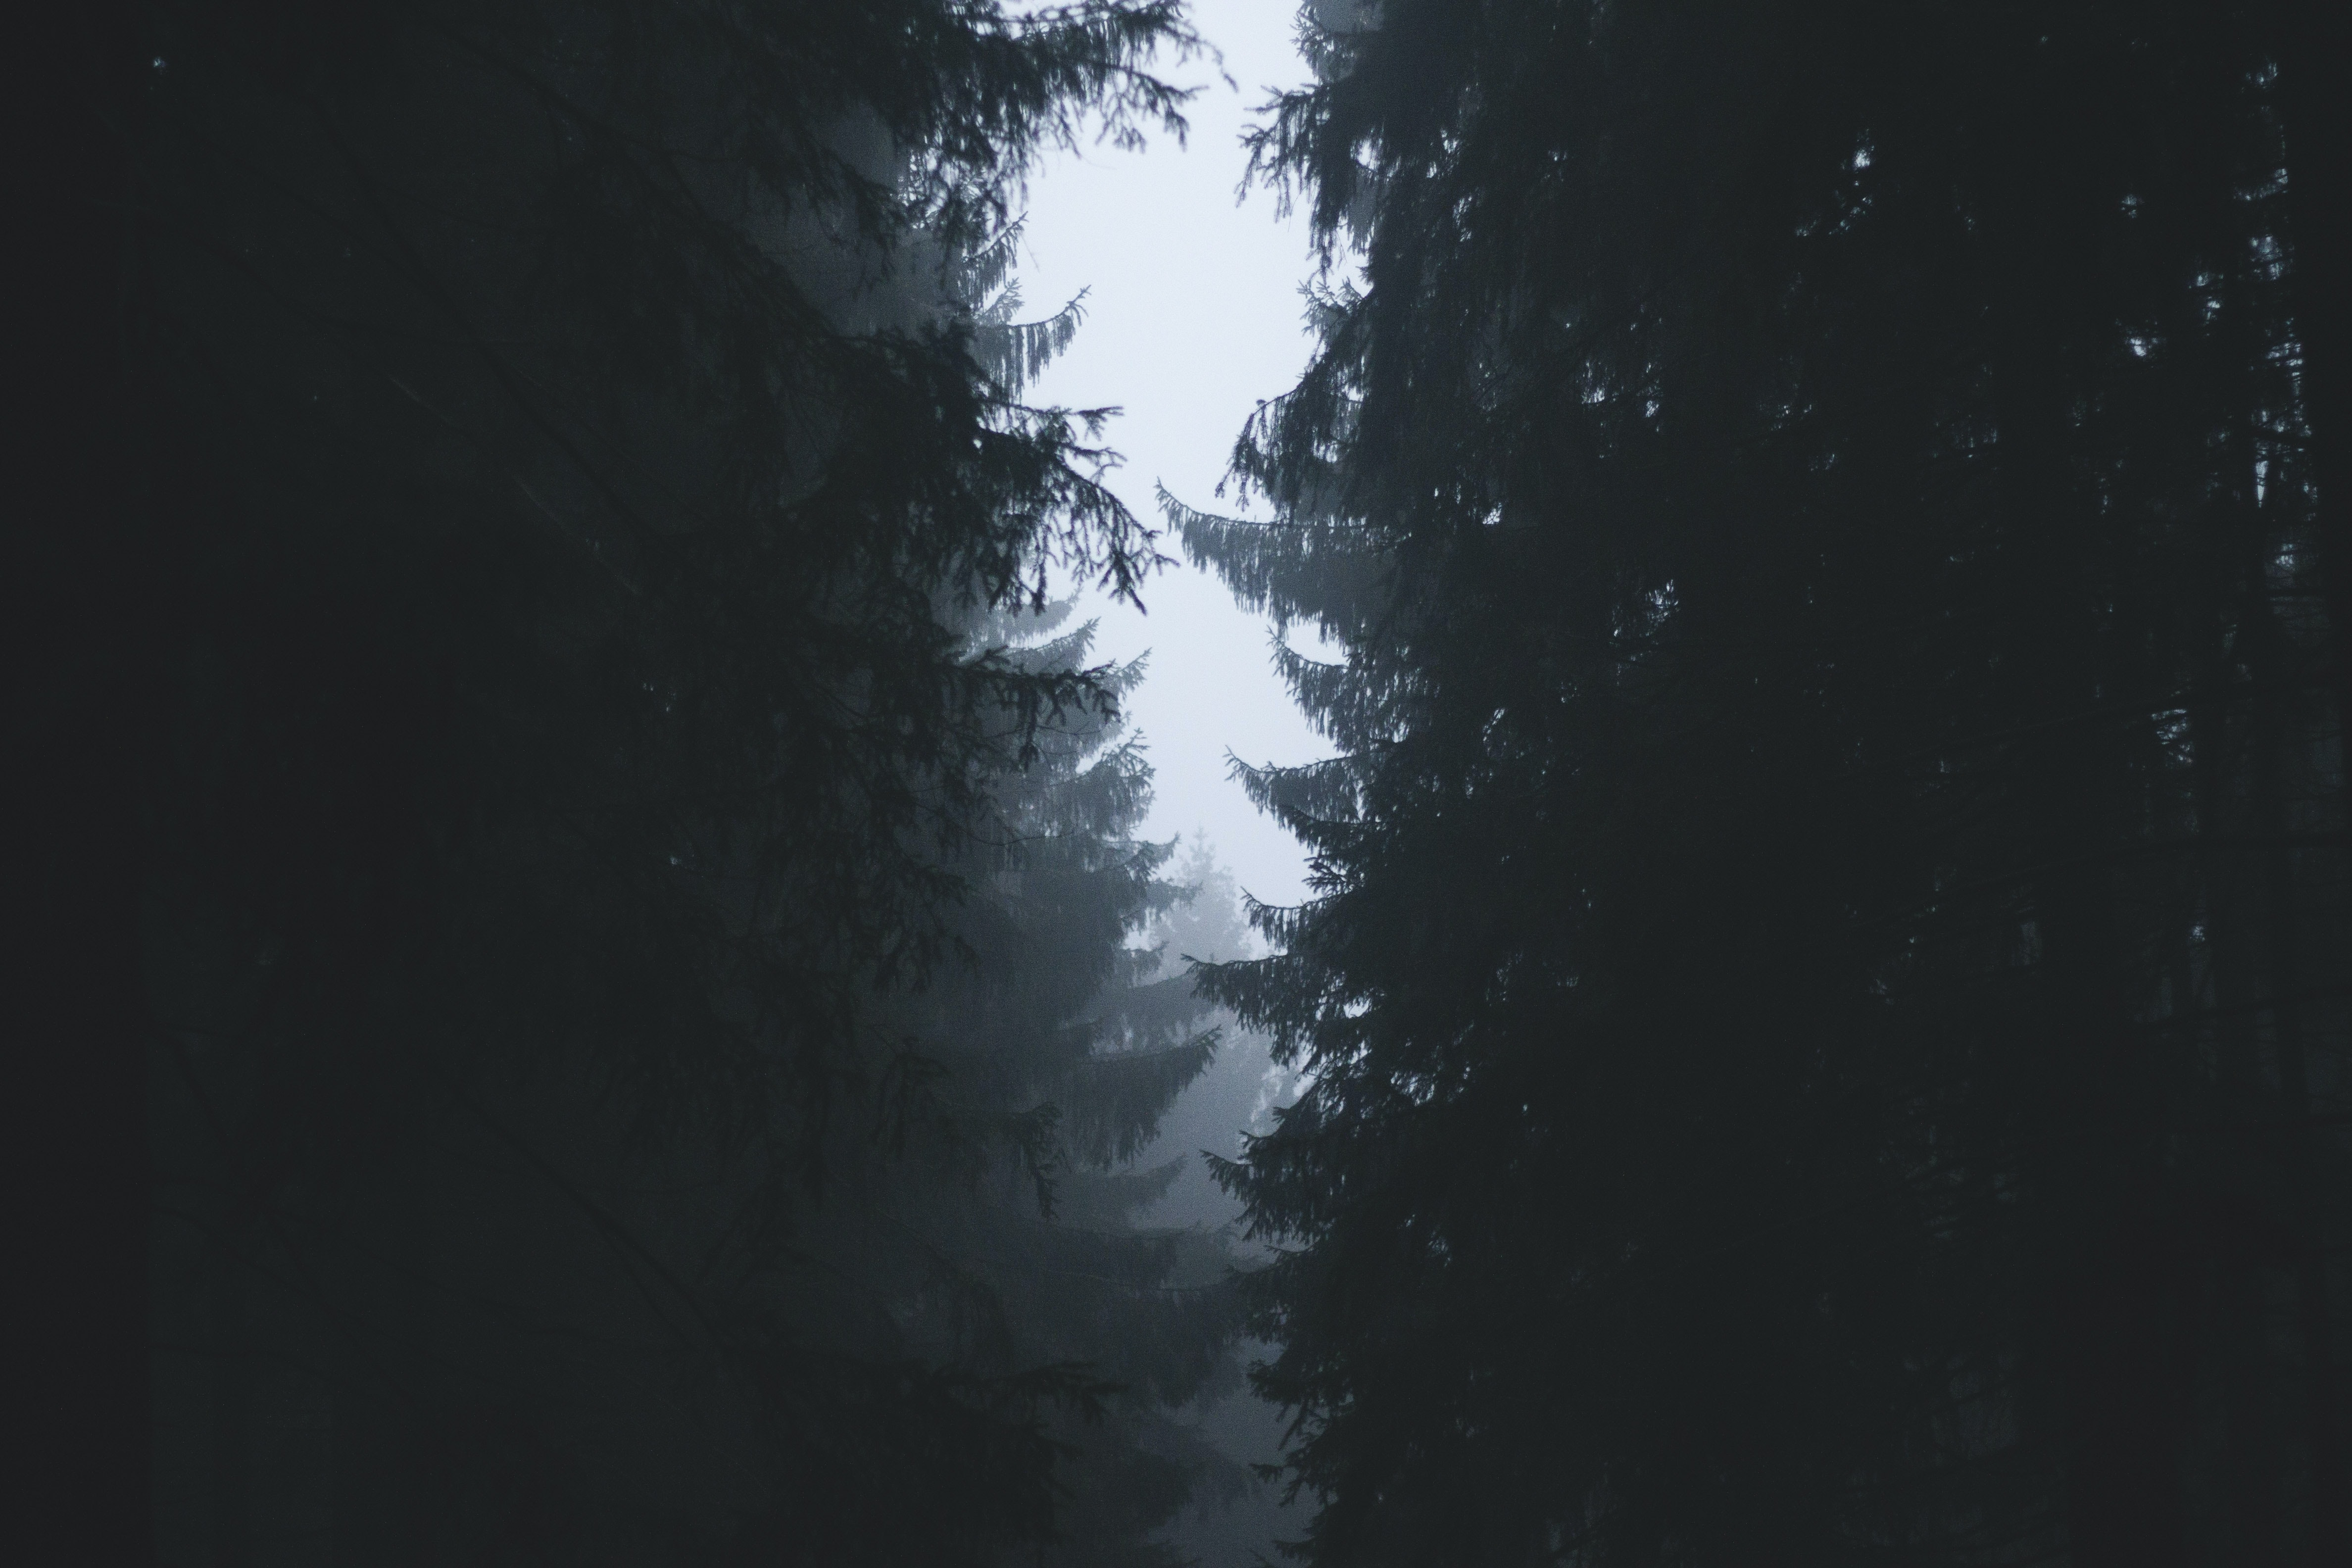 Pale sky in a gap between two lines of evergreen trees